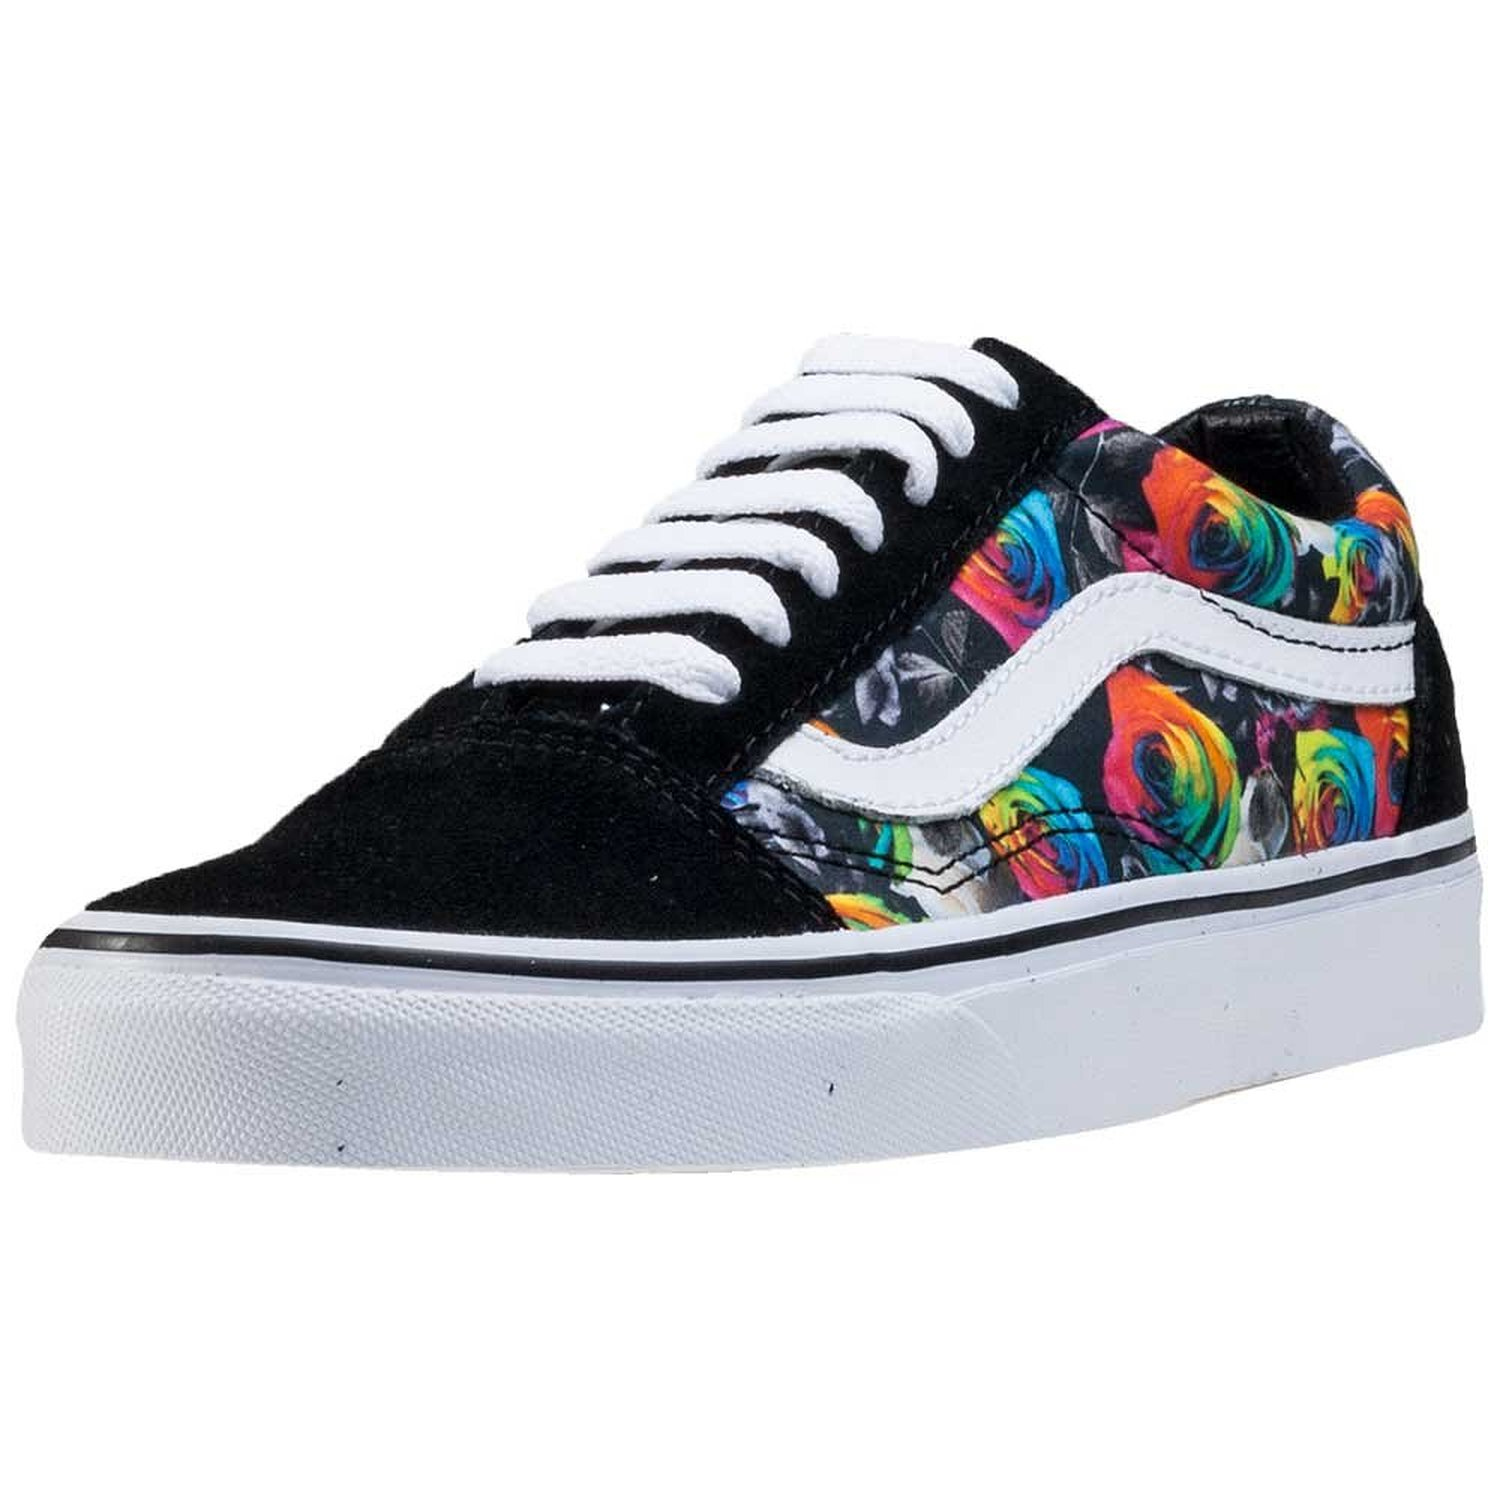 8f1937cdcf747 Amazon.com | Vans Unisex Old Skool (Rainbow Floral) Skate Shoe |  Skateboarding